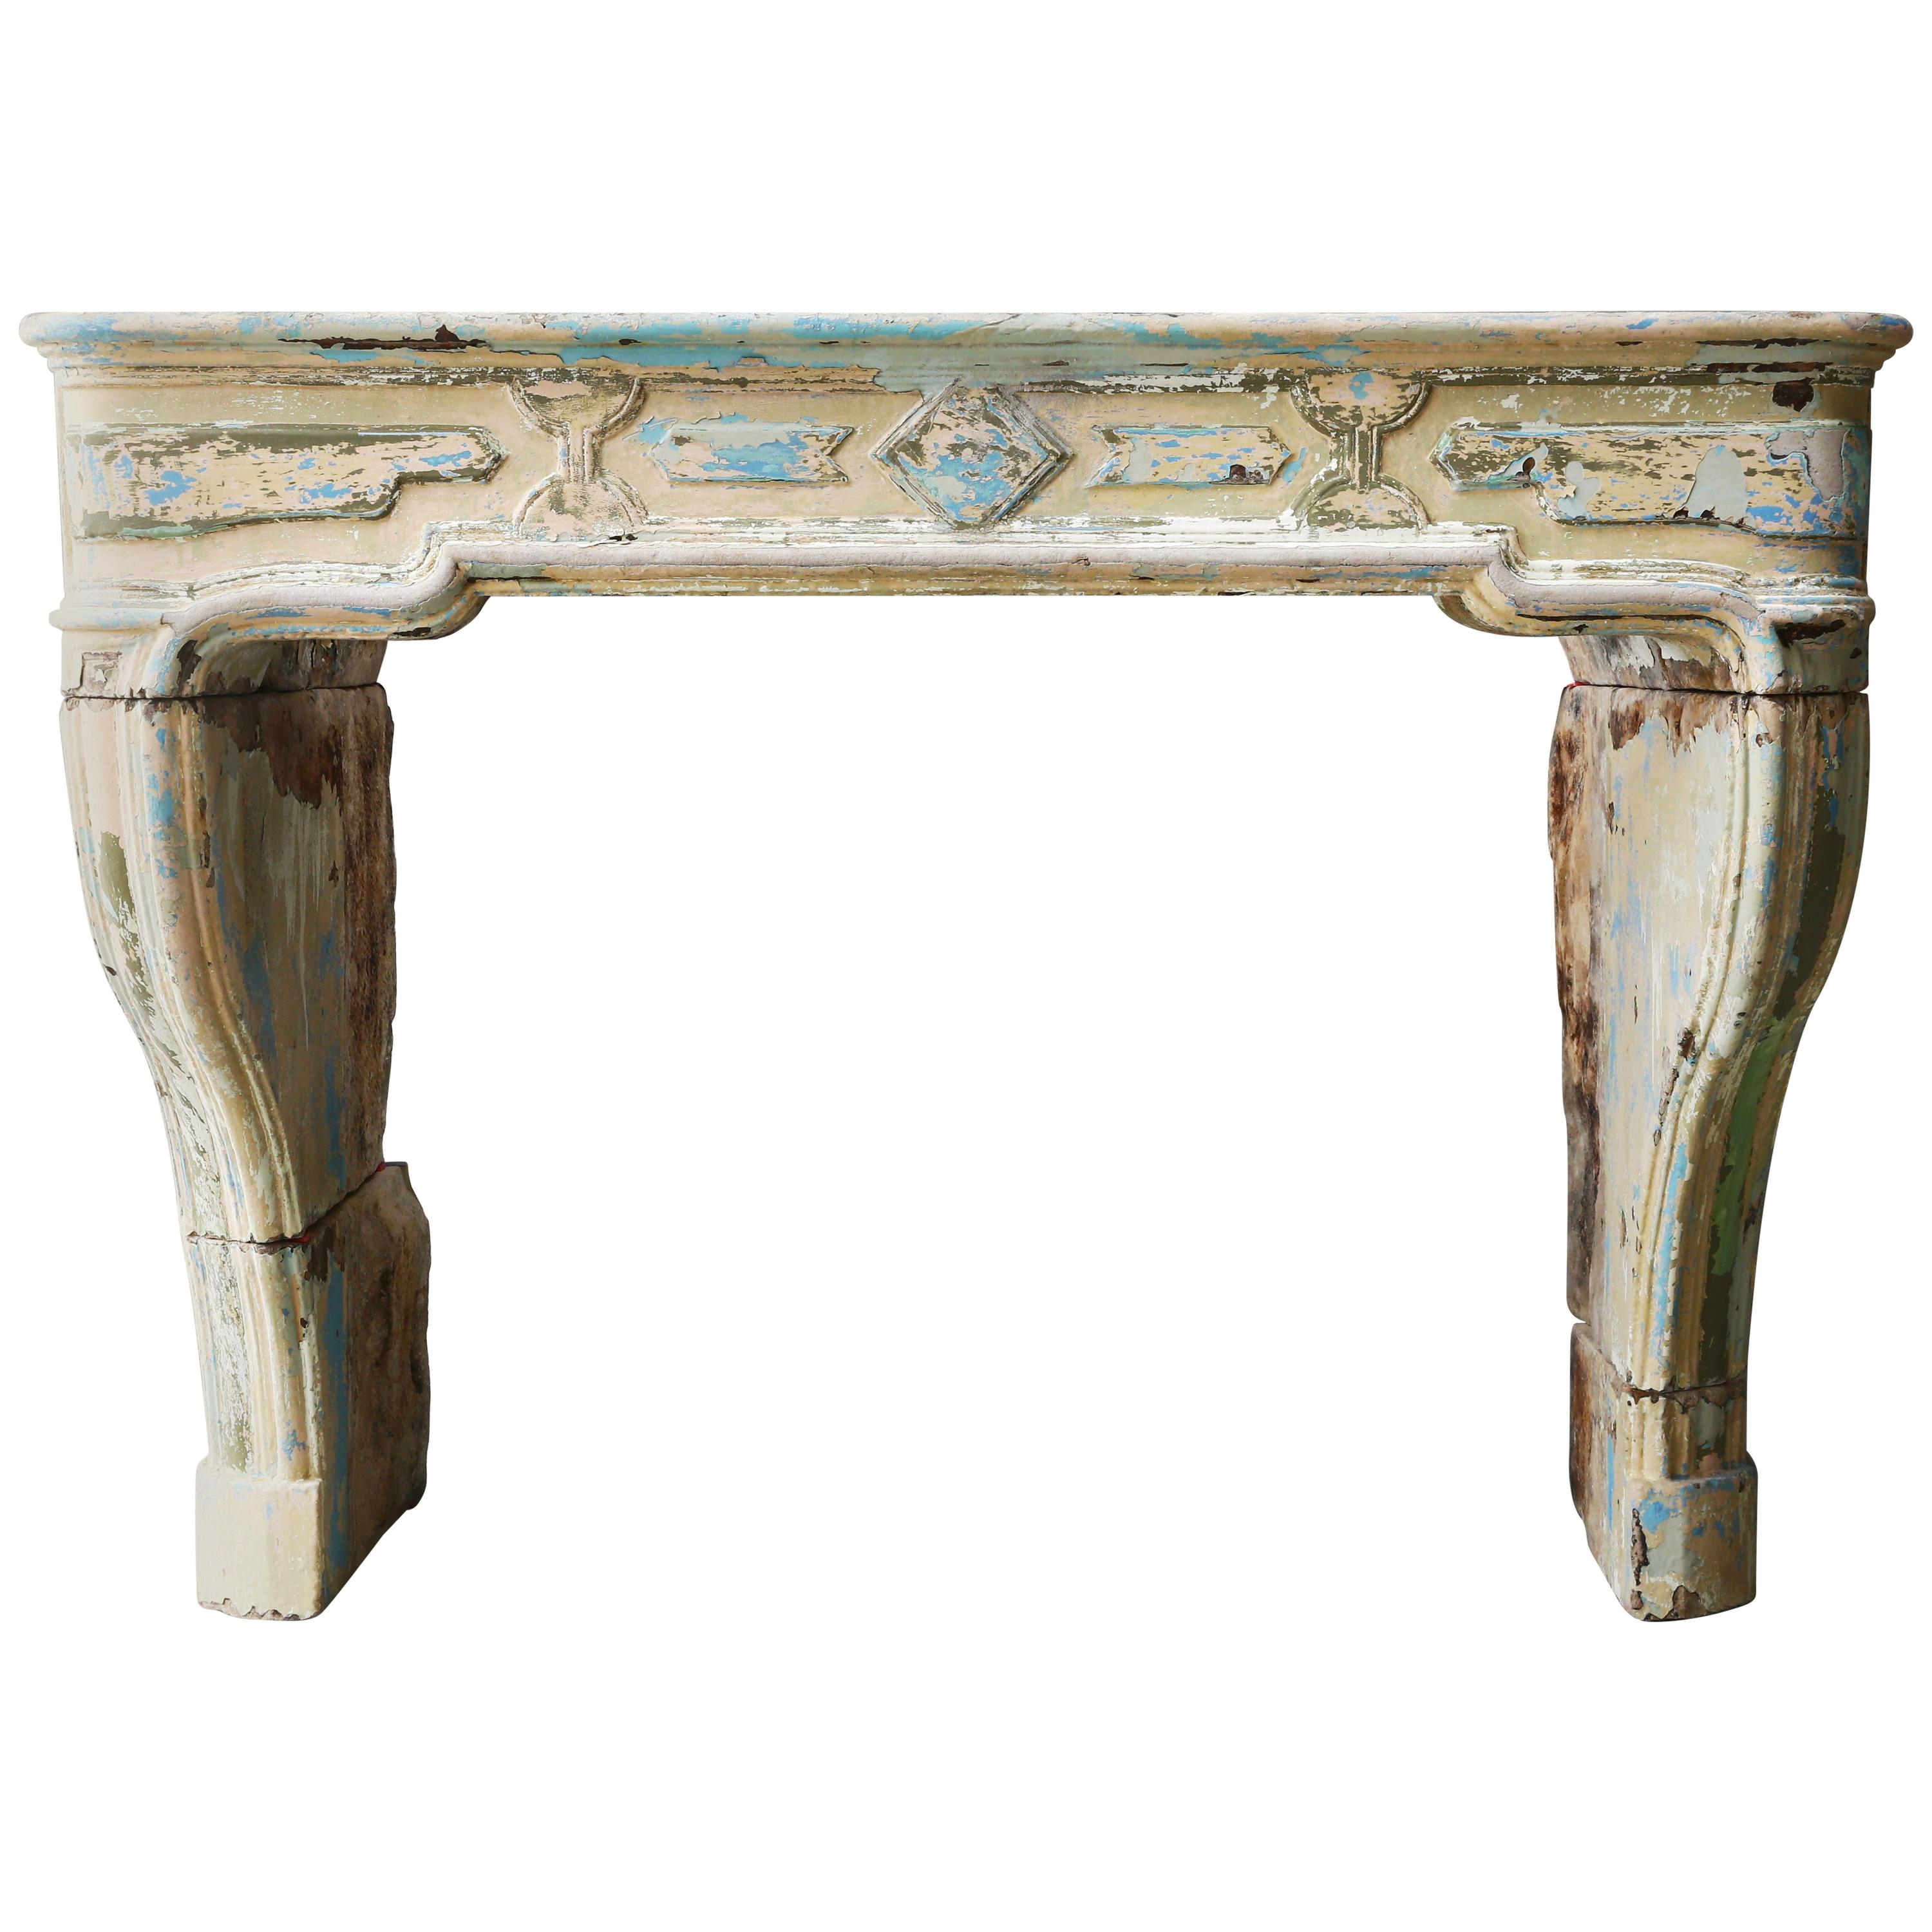 Antique Mantel Piece of French Limestone from the 19th Century